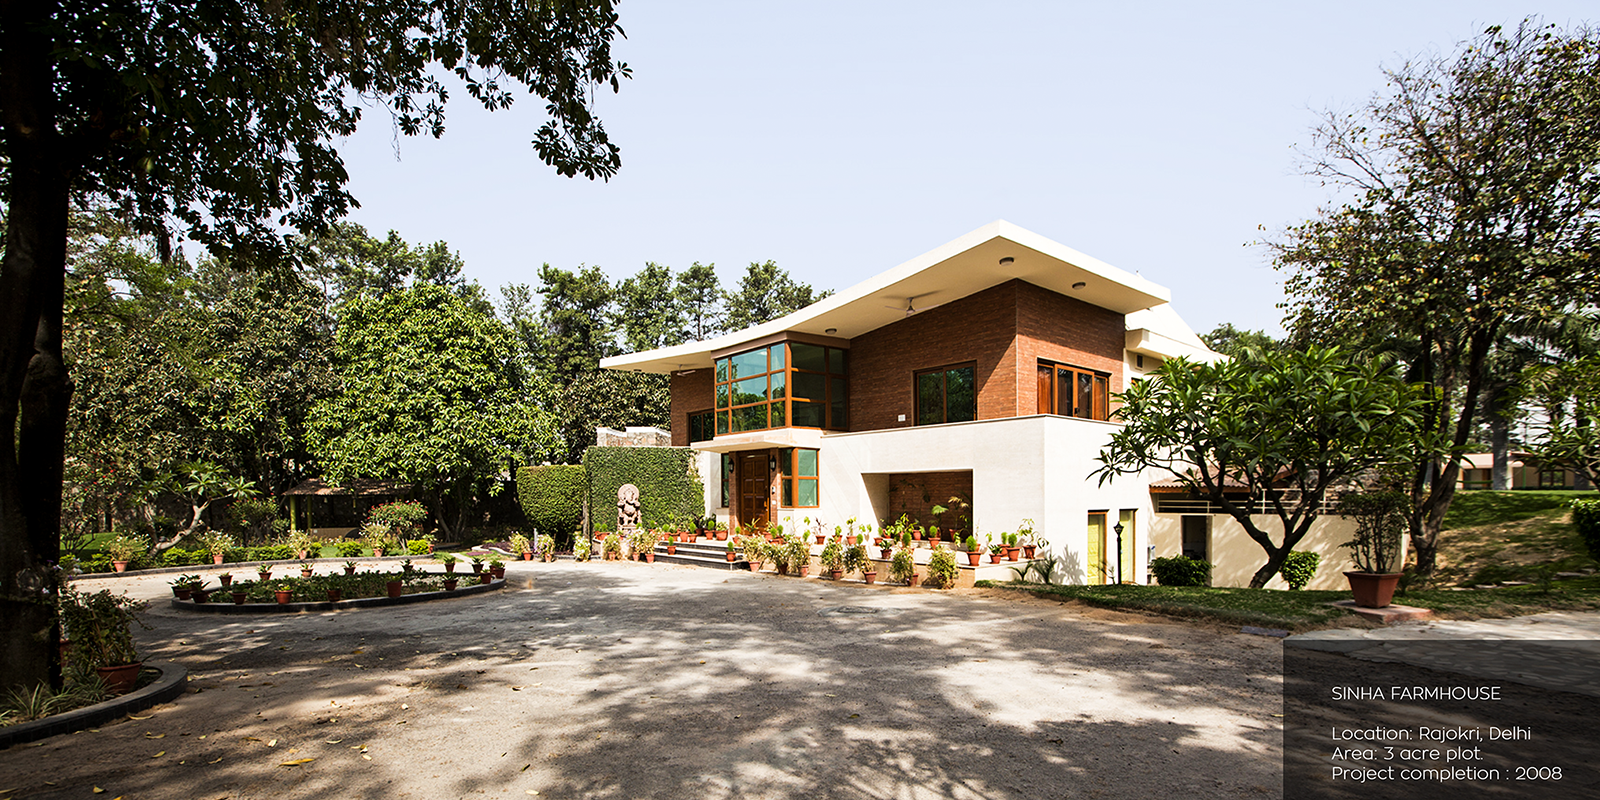 sinha-farmhouse-the-novarch-architects-best-architects-in-cr-park-south-delhi-110019